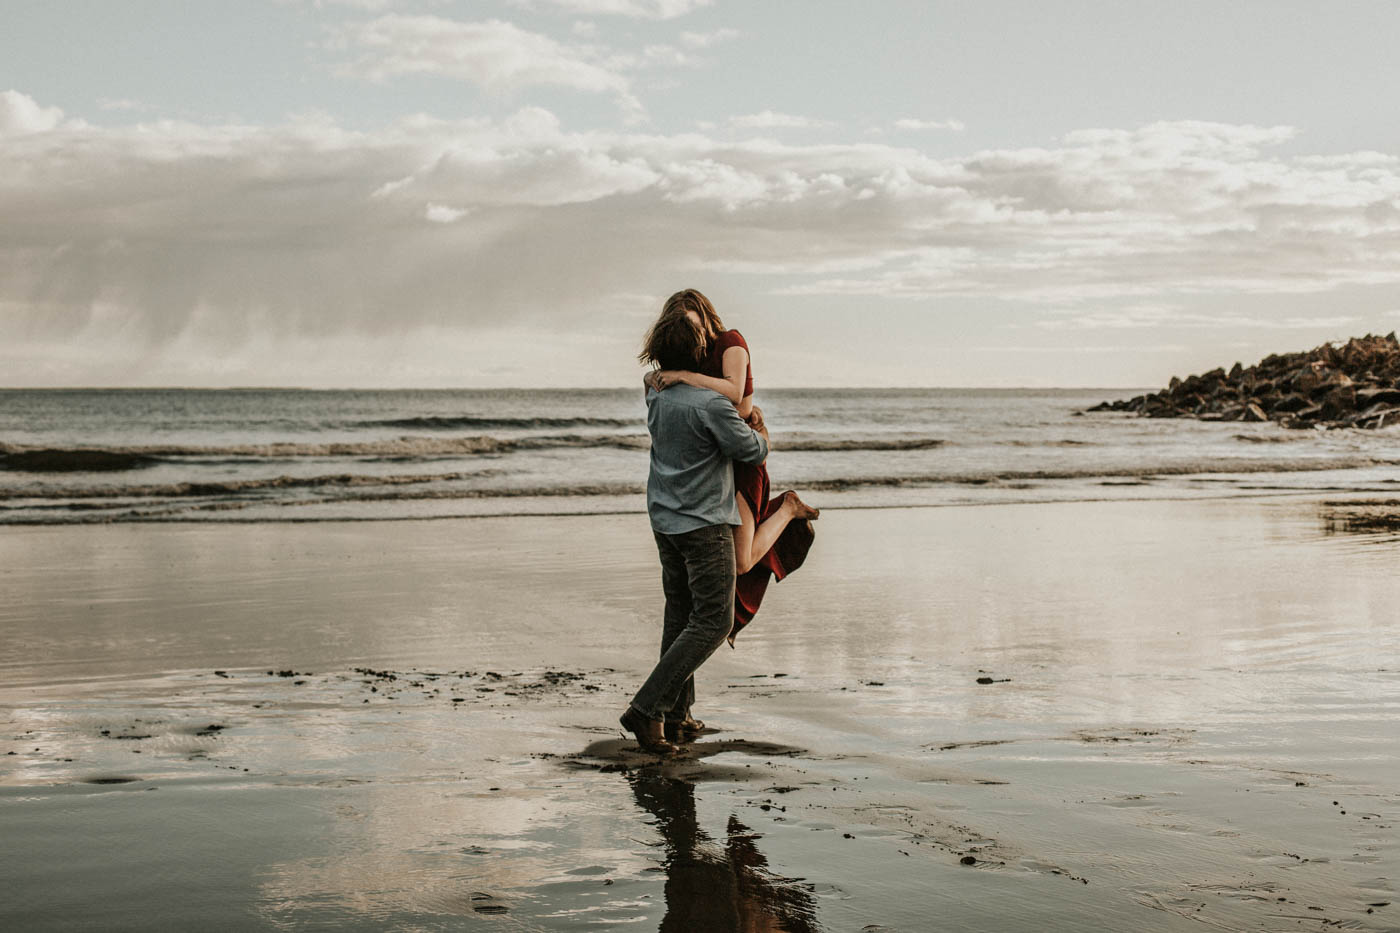 Cape Disappointment Couple's Session on the Washington Coast | Rosemary & Pine PhotographyCape Disappointment Couple's Session on the Washington Coast | Rosemary & Pine Photography